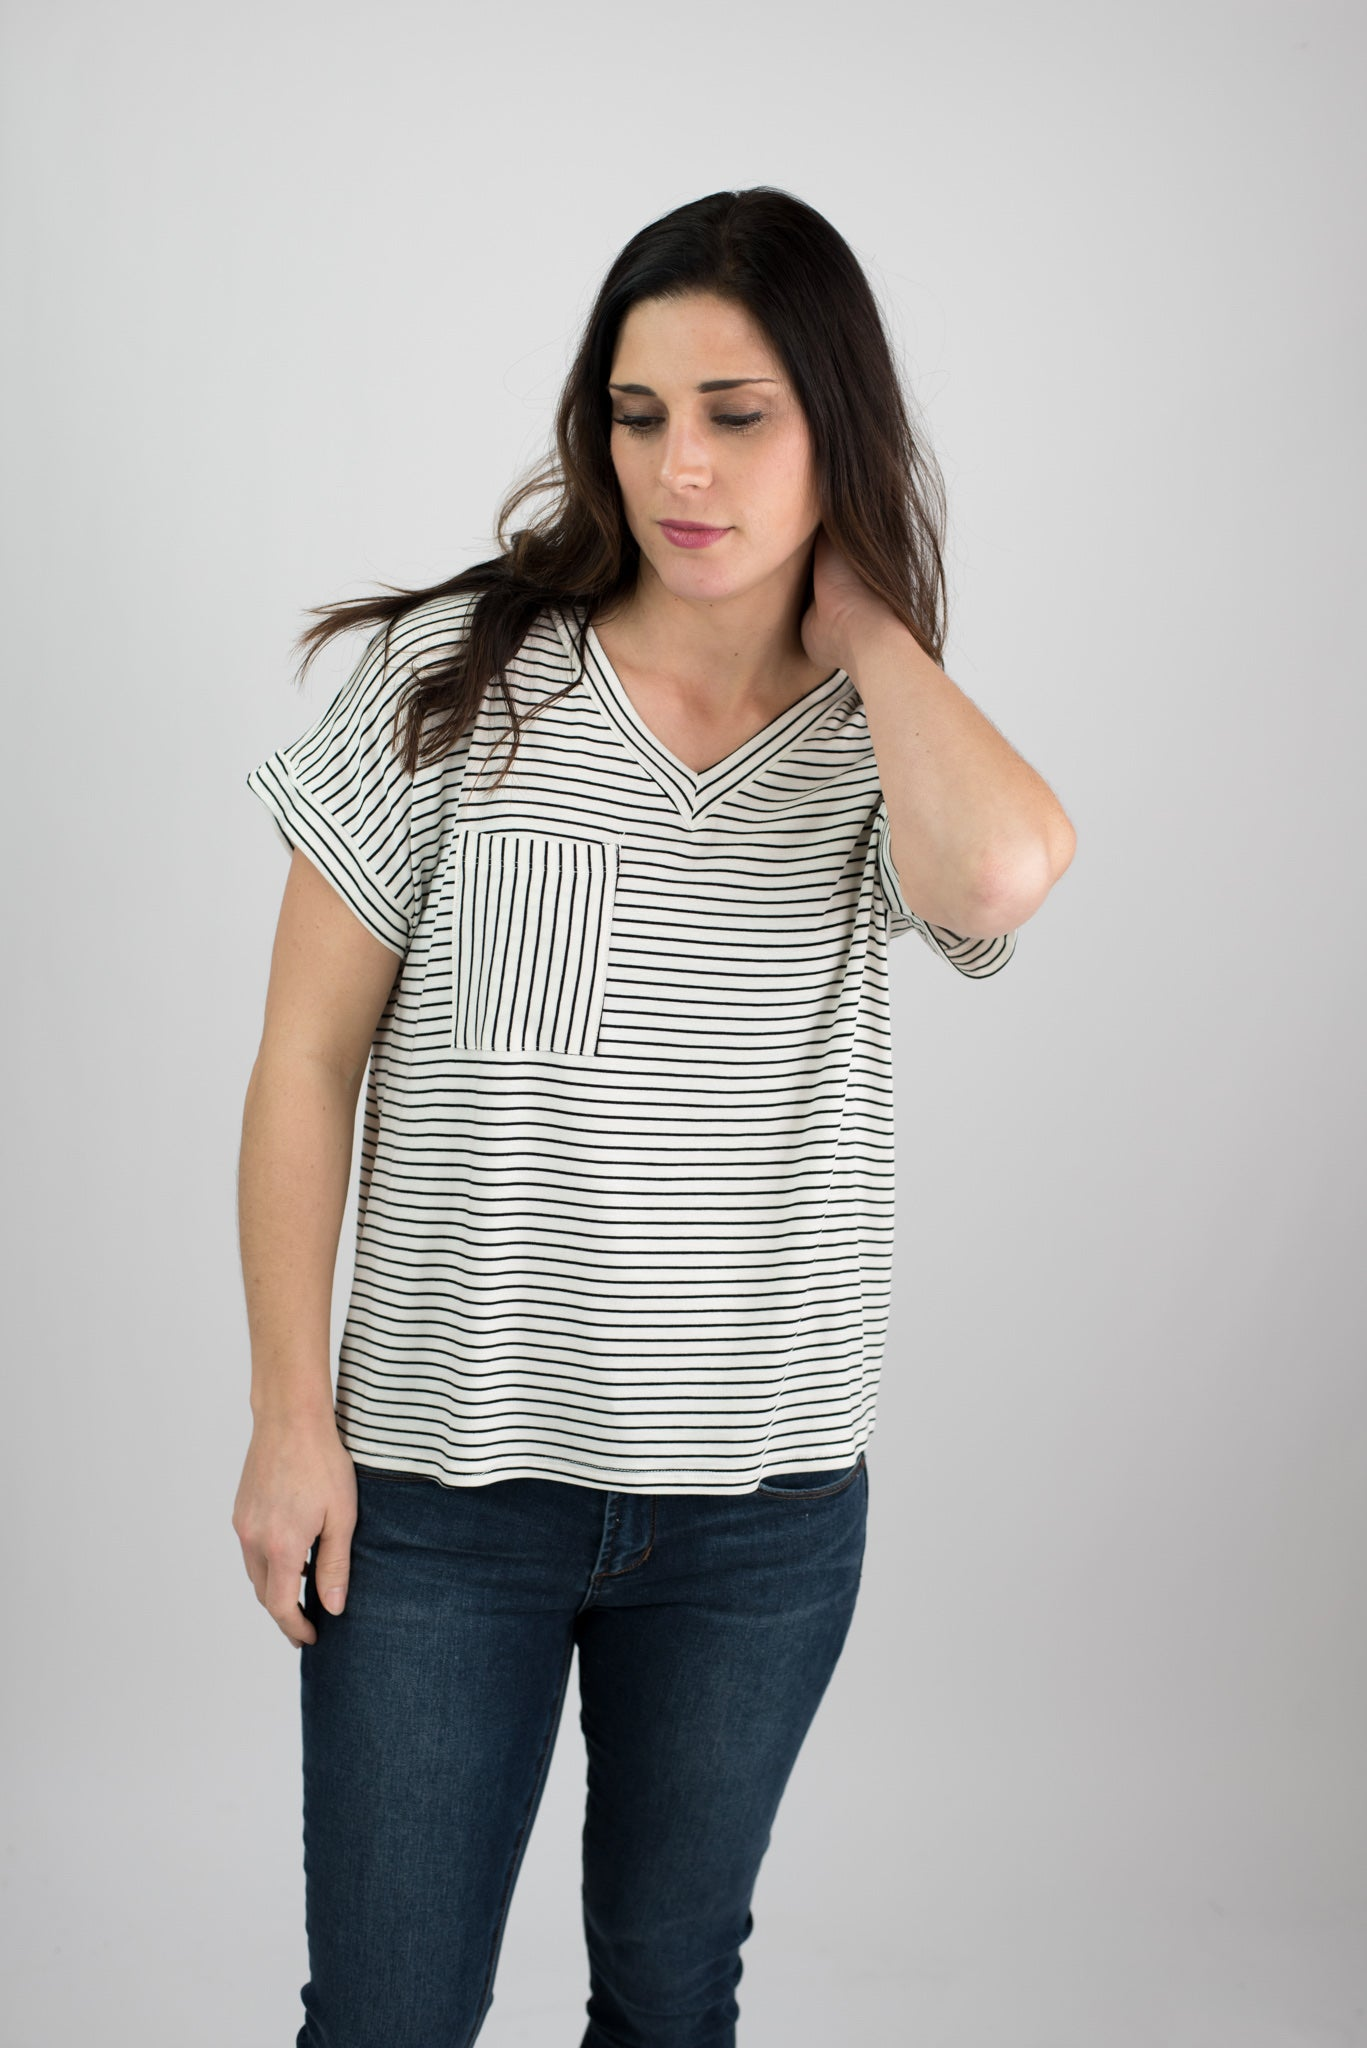 Tilted Views Pocket Tee - White with Black Stripes